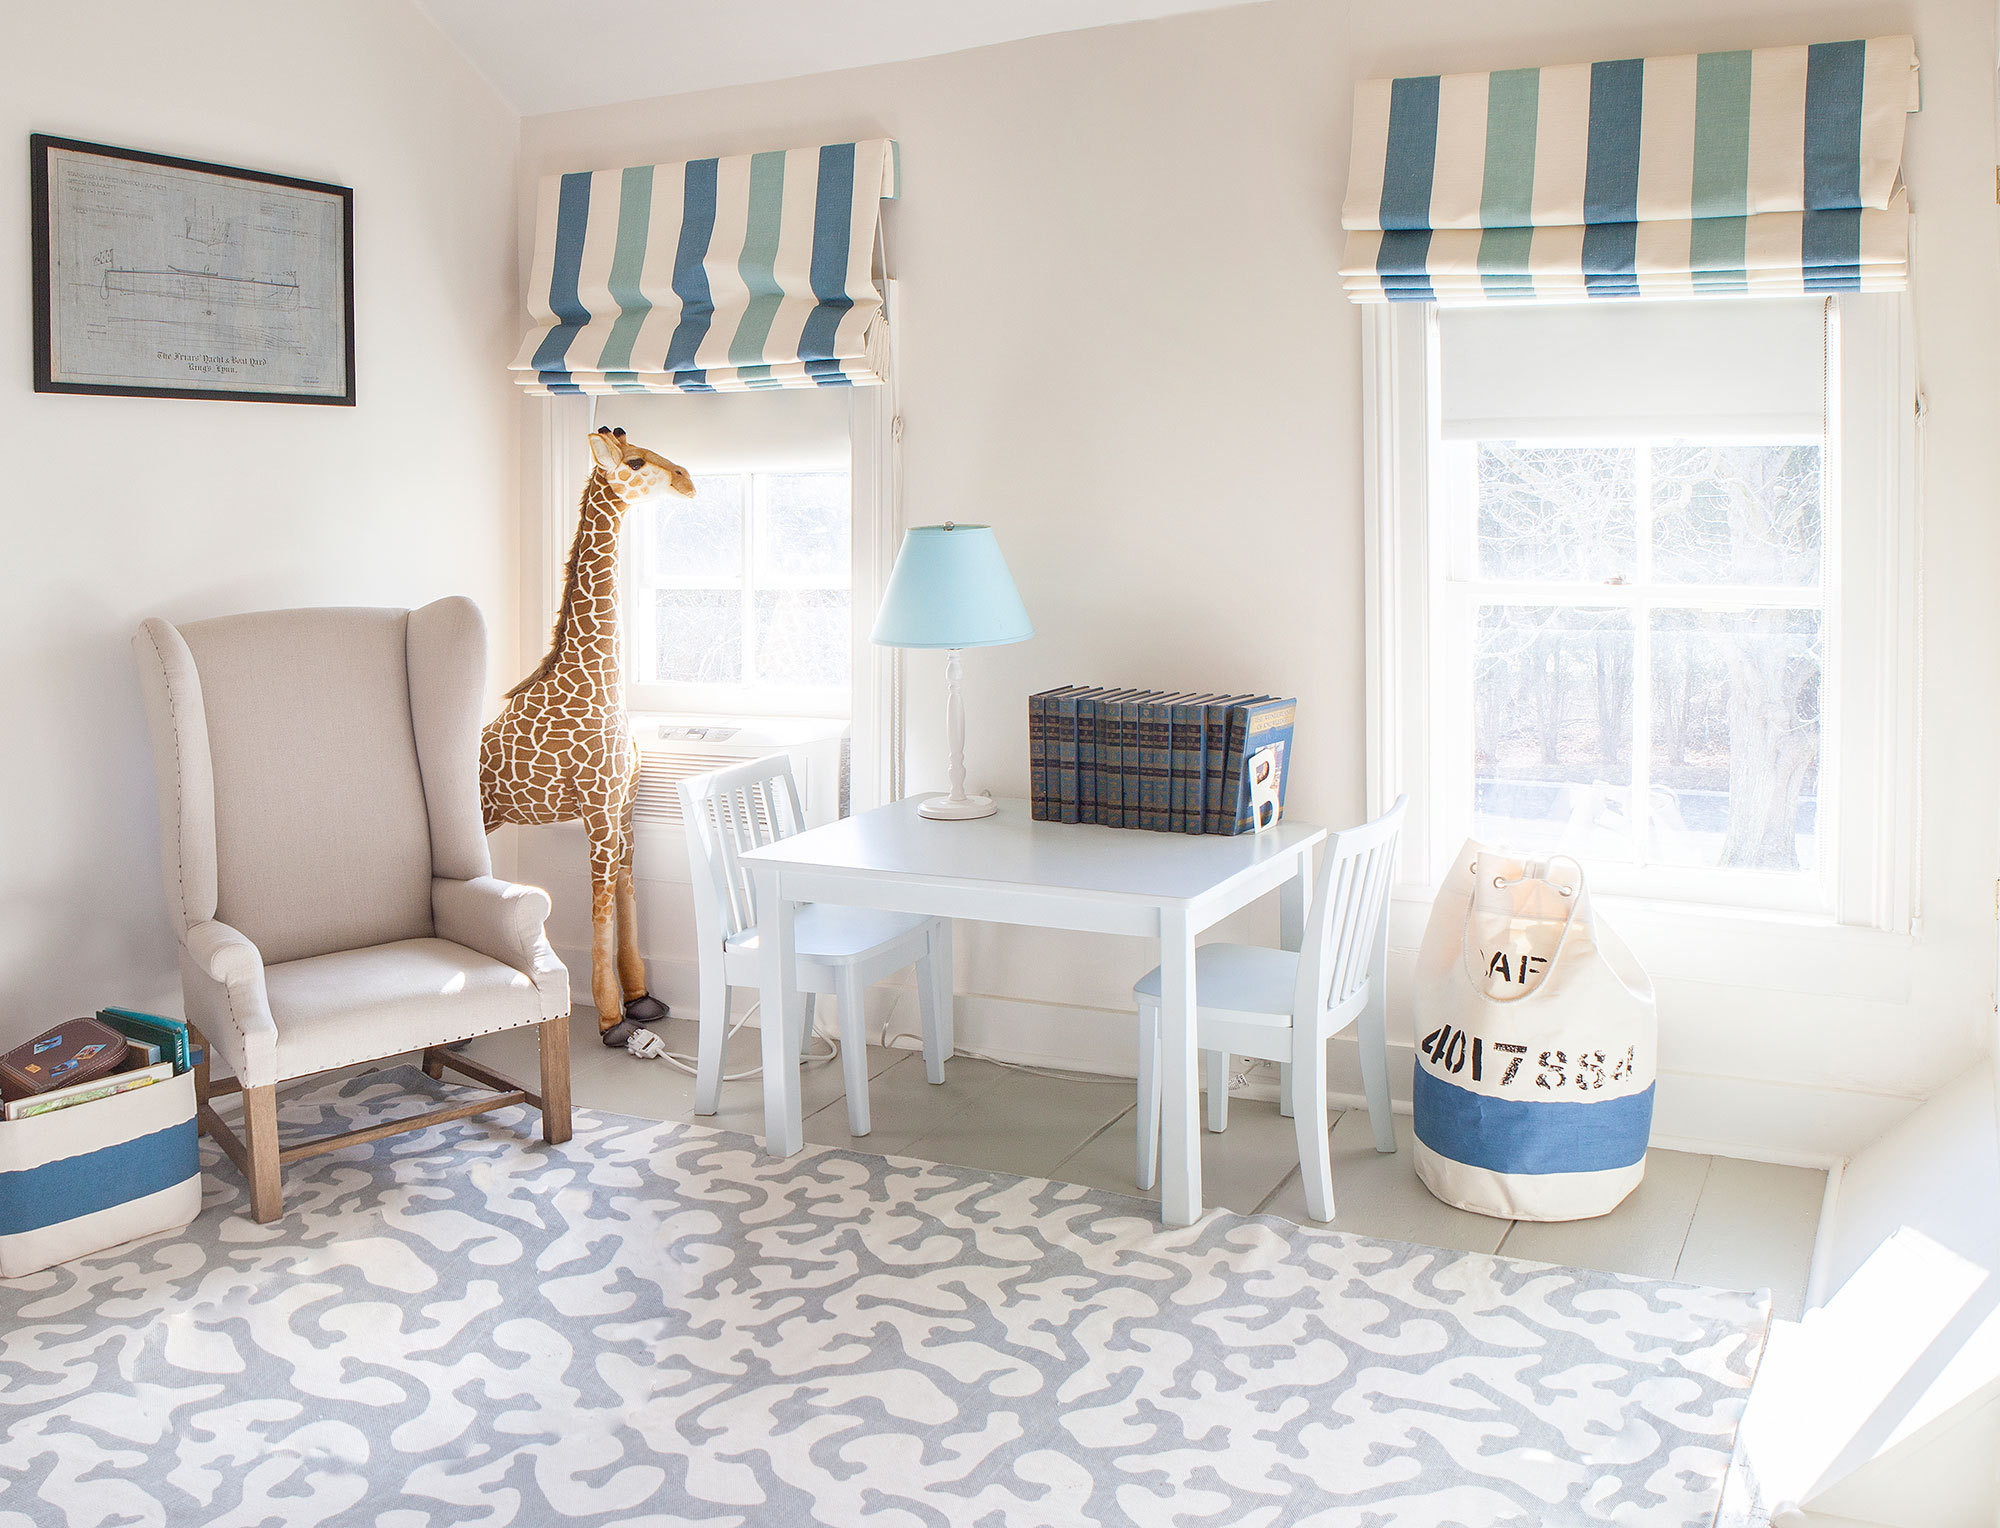 The nursery's gray and blue color scheme is both child-friendly and stylish.